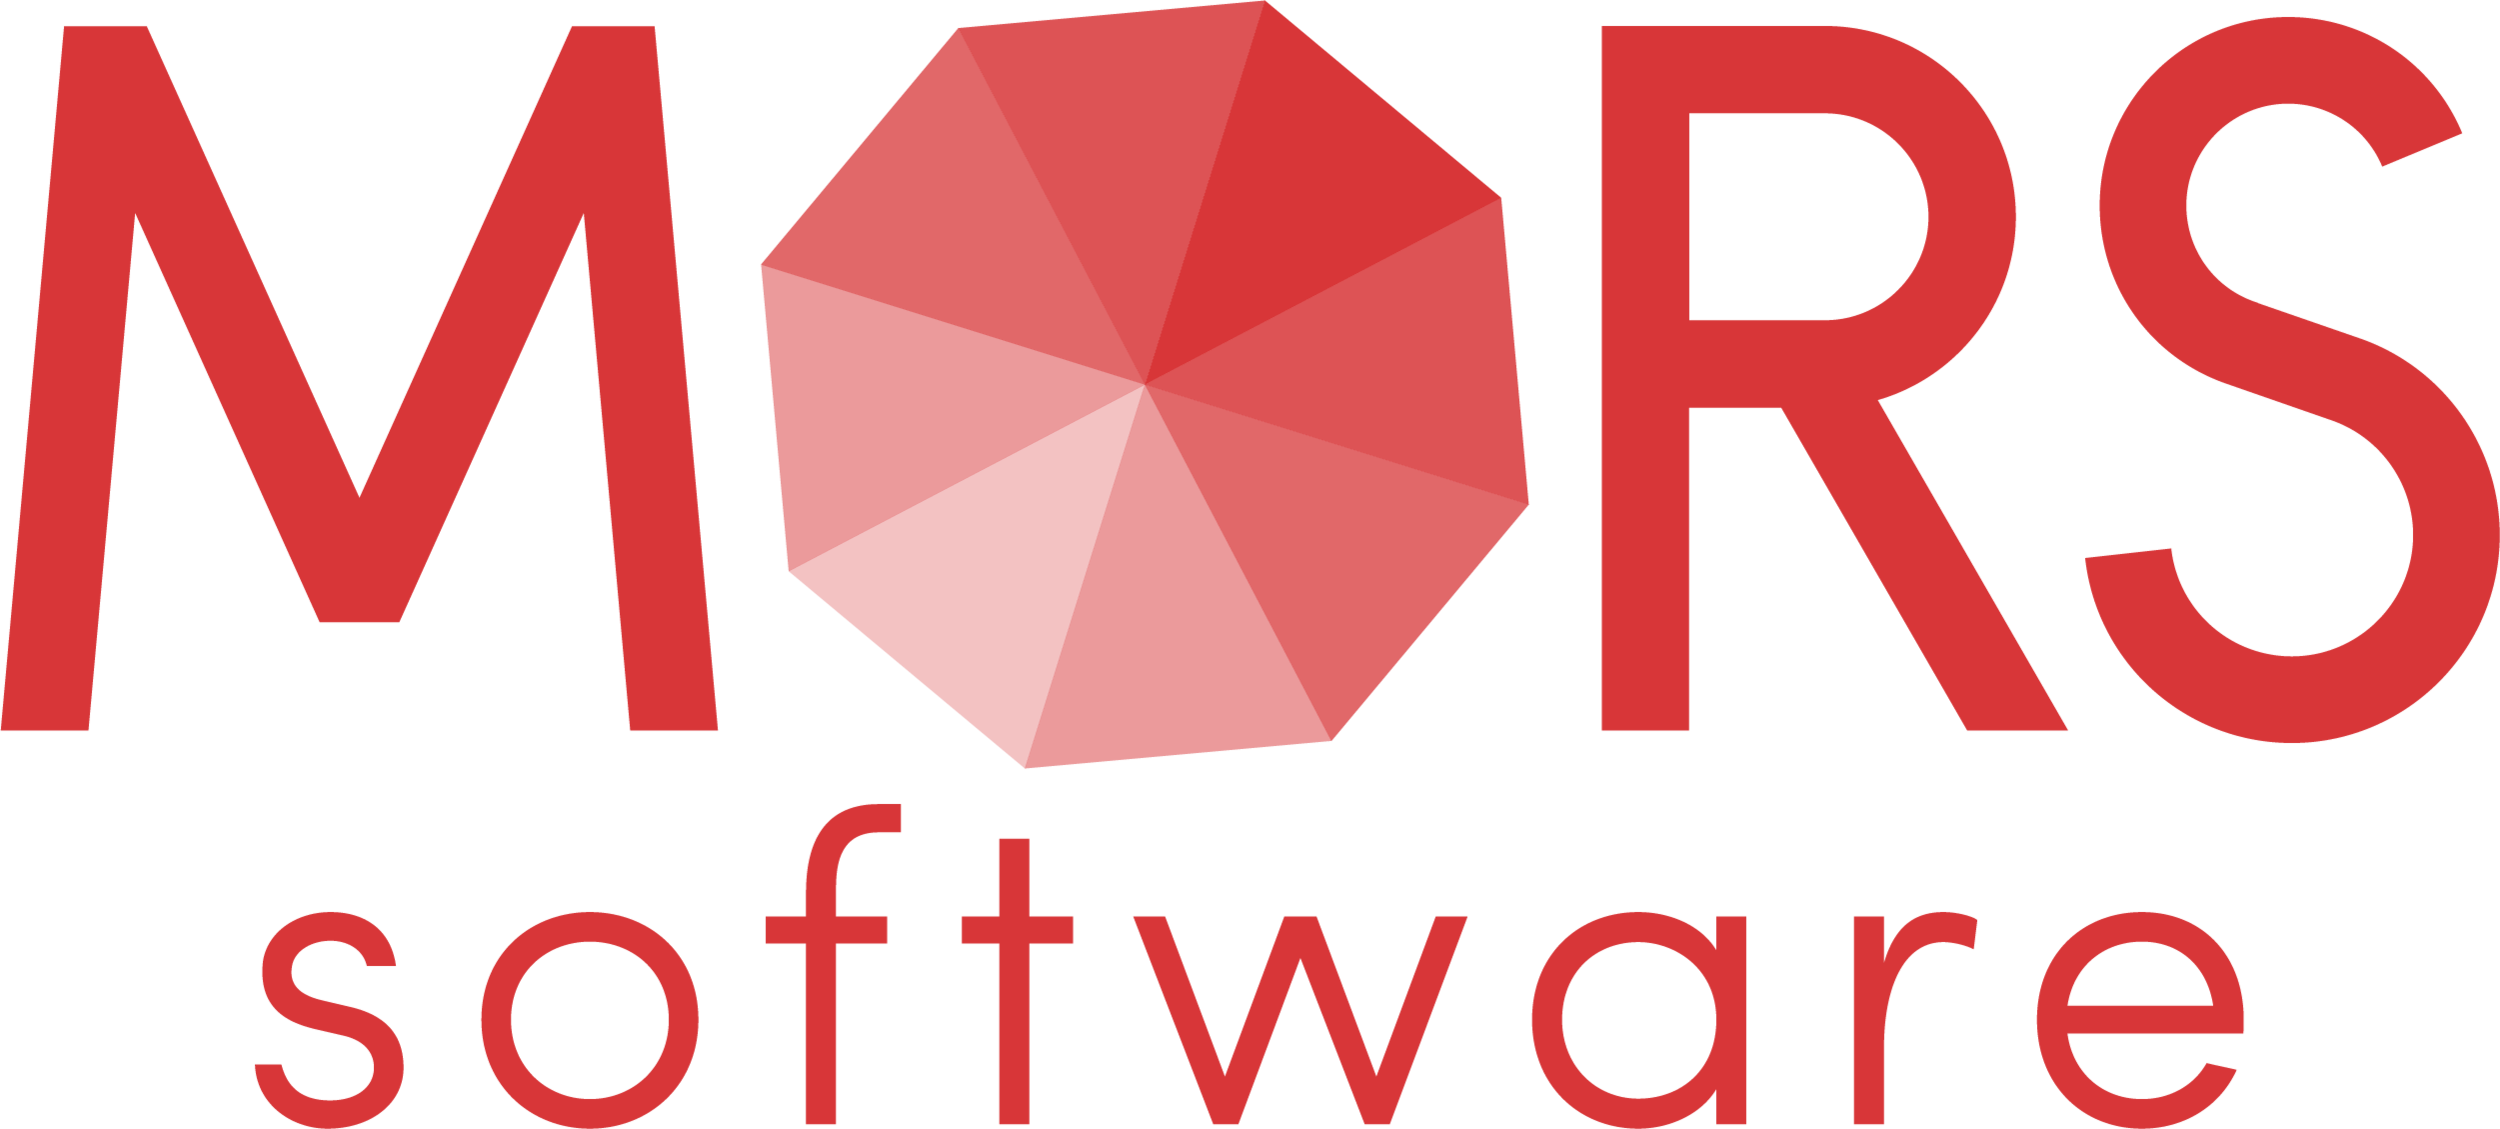 MORS software RED-CMYK.png